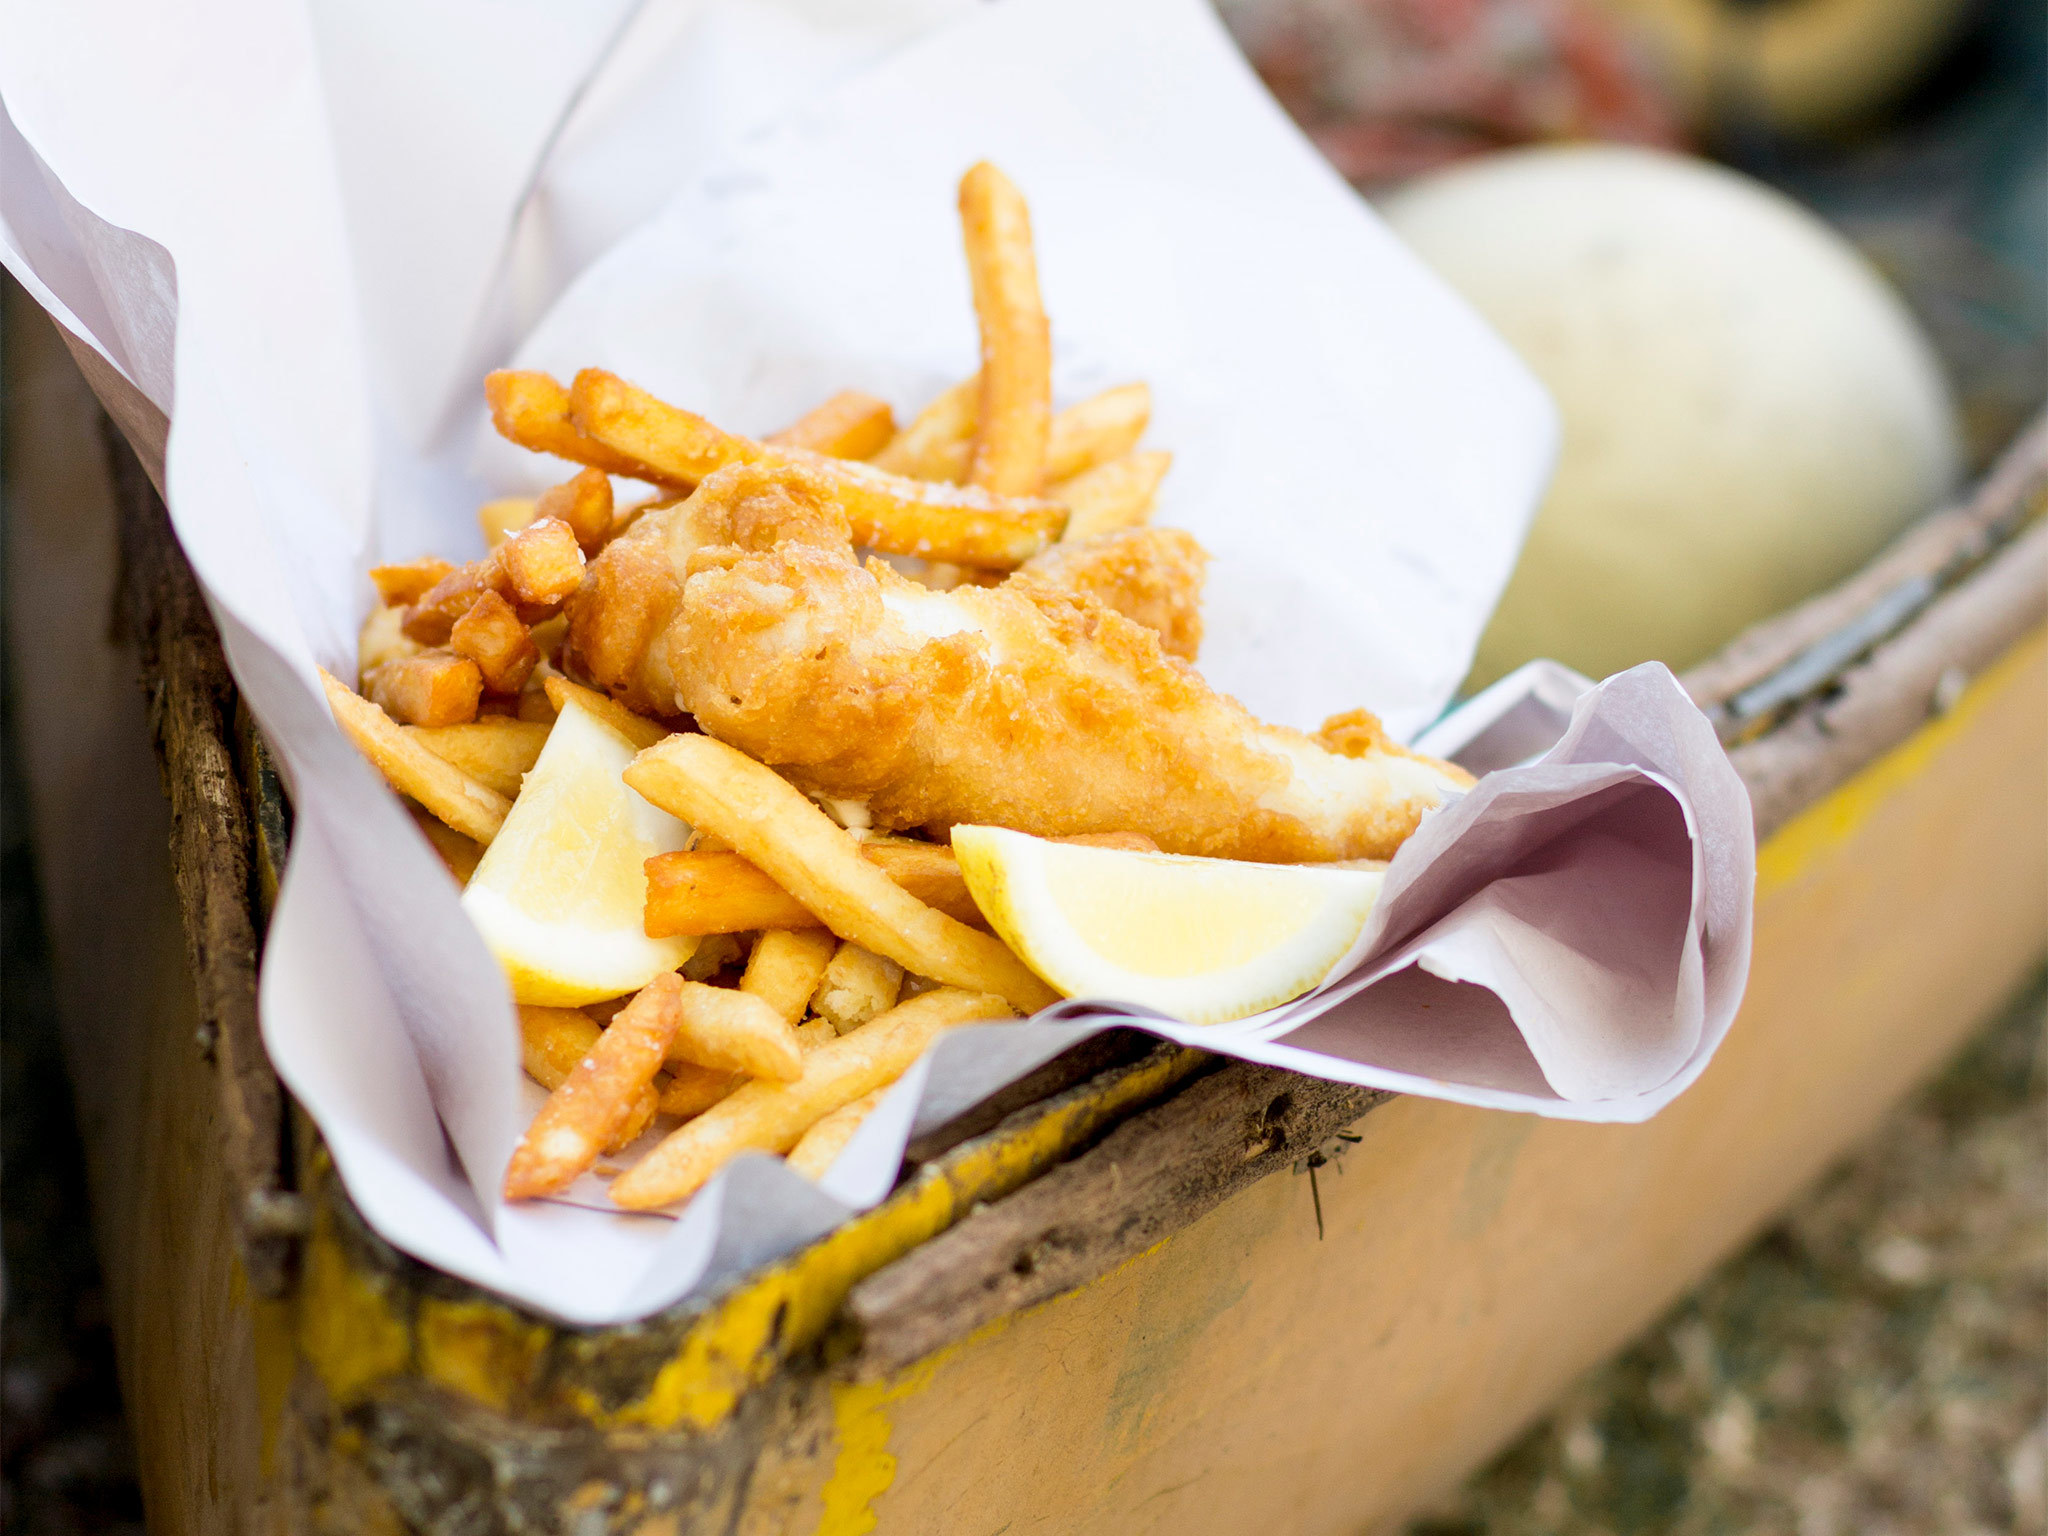 Exclusive Paper Fish giveaway at the new Stokehouse Precinct